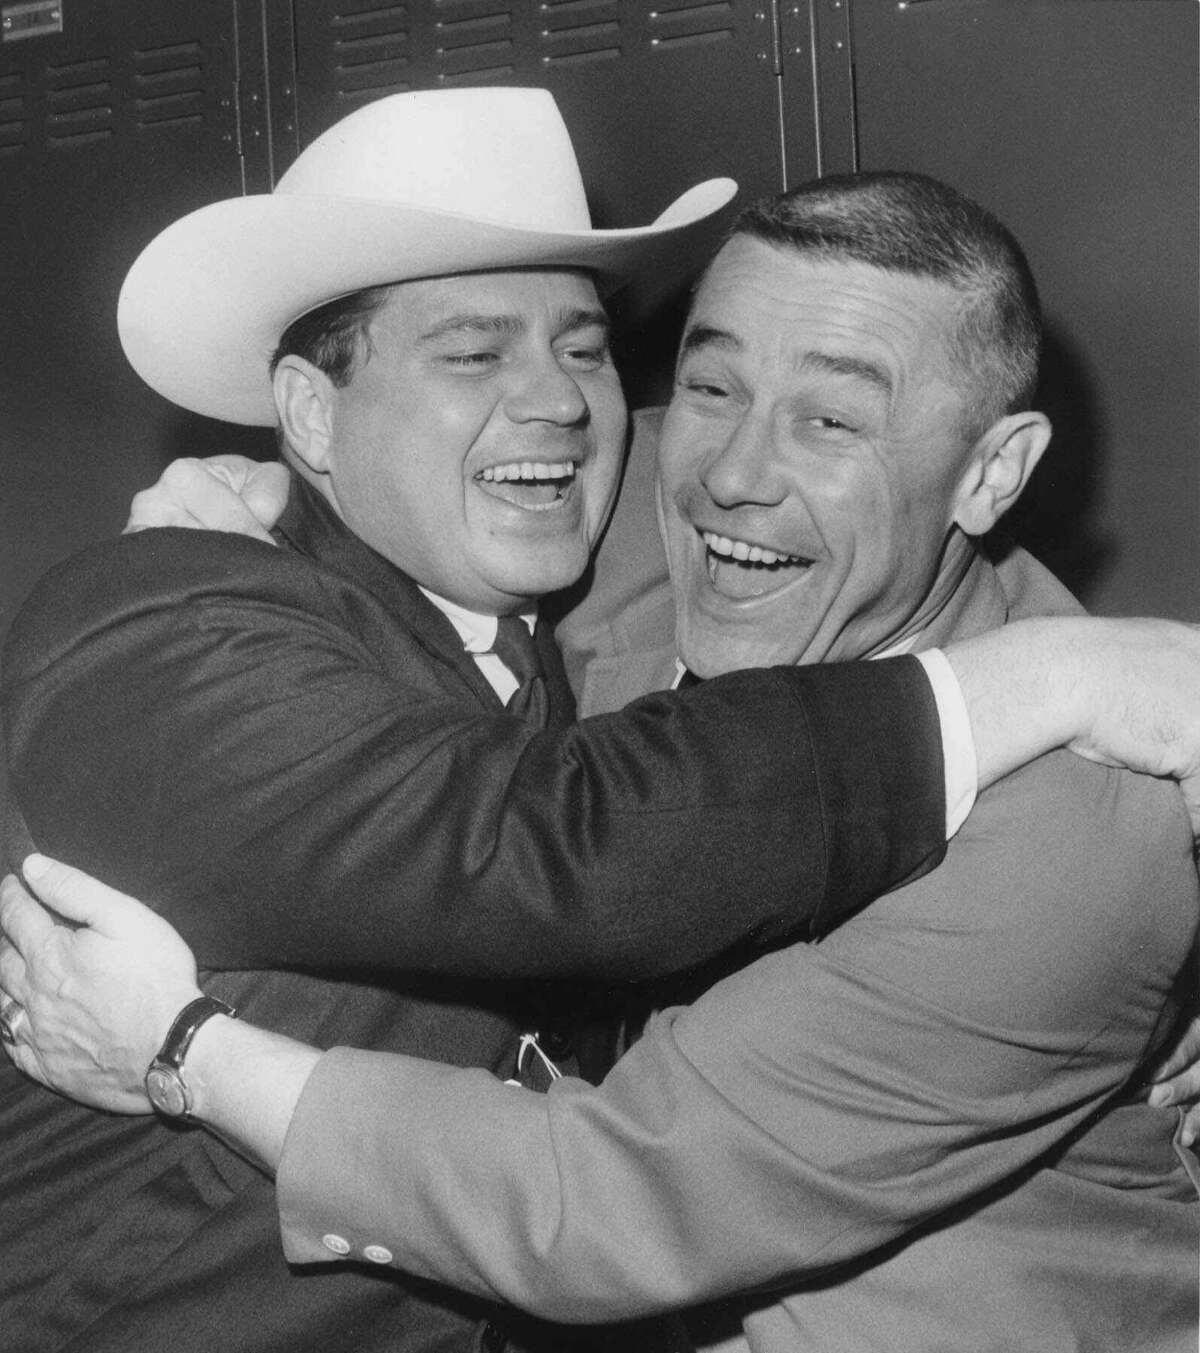 Bud Adams, left, celebrates the Oilers' second AFL title in a row with coach Wally Lemm after the team beat the Chargers 10-3 in San Diego on Dec. 24, 1961.